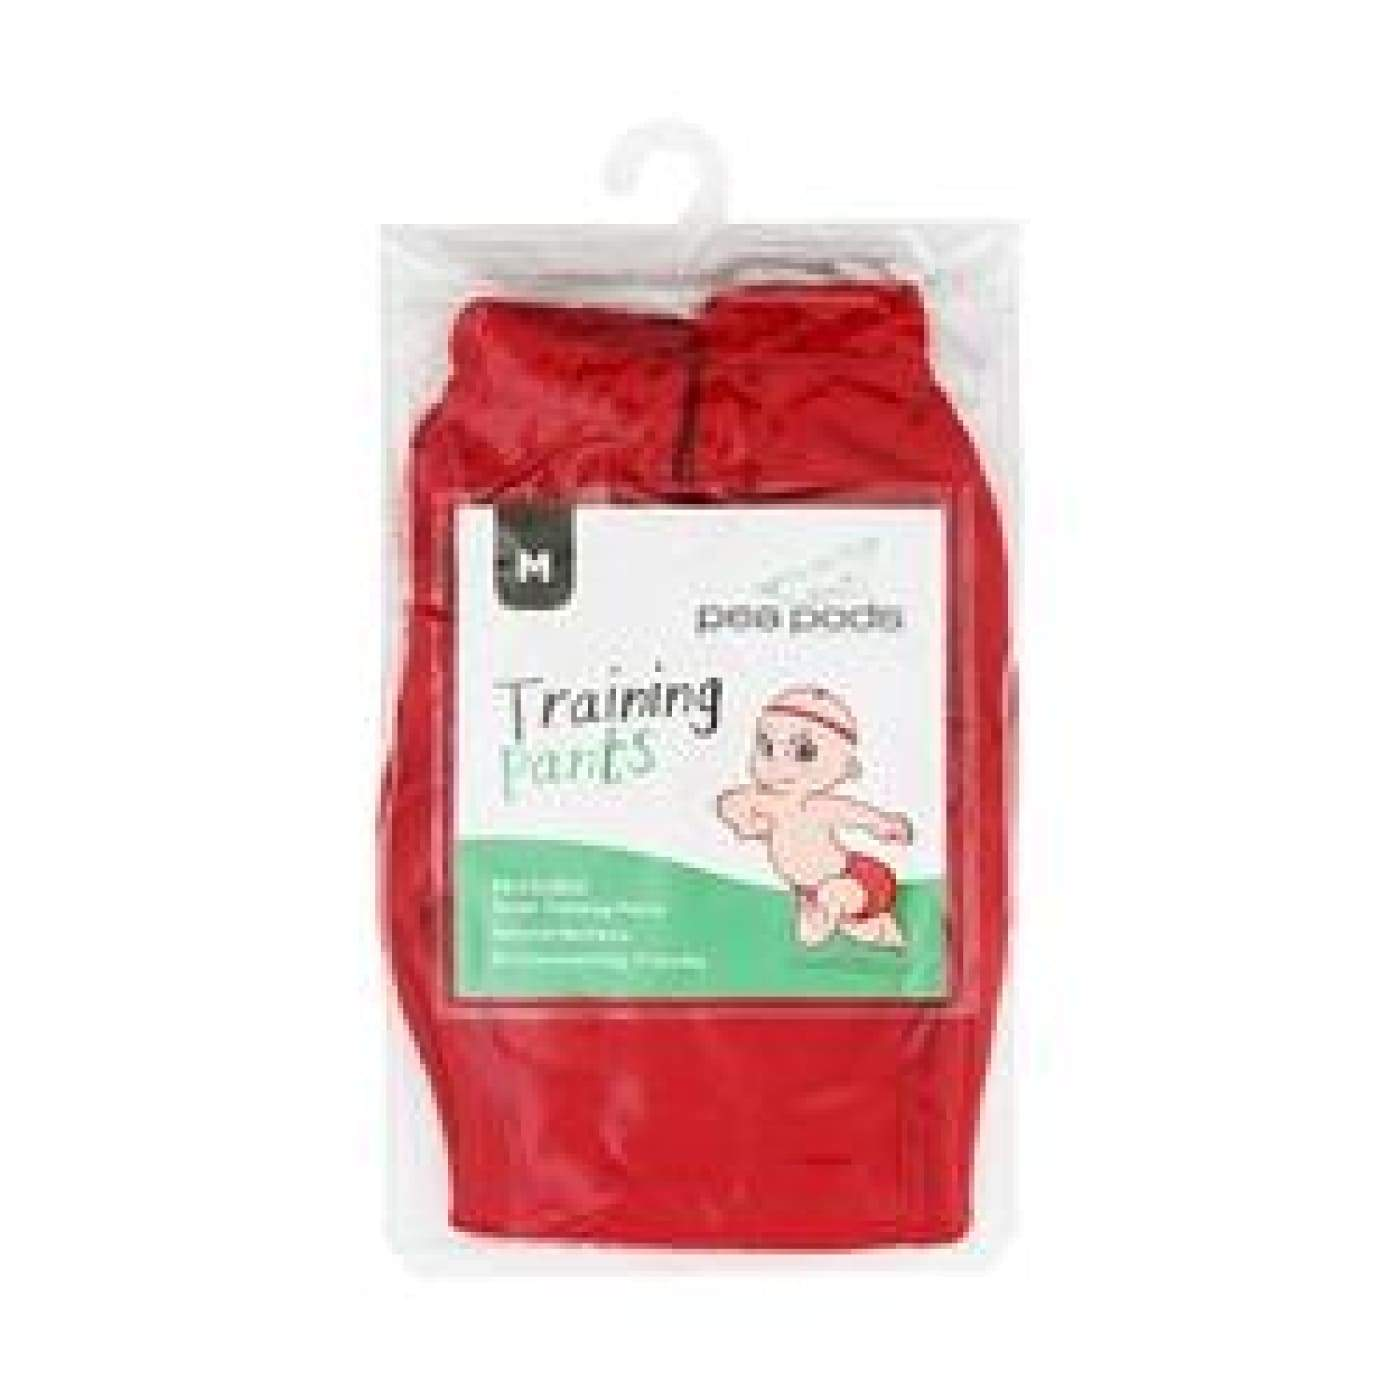 Pea Pods Training Pants Extra Large - Racing Red - BATHTIME & CHANGING - NAPPIES/WIPES/ACC ECO RANGE